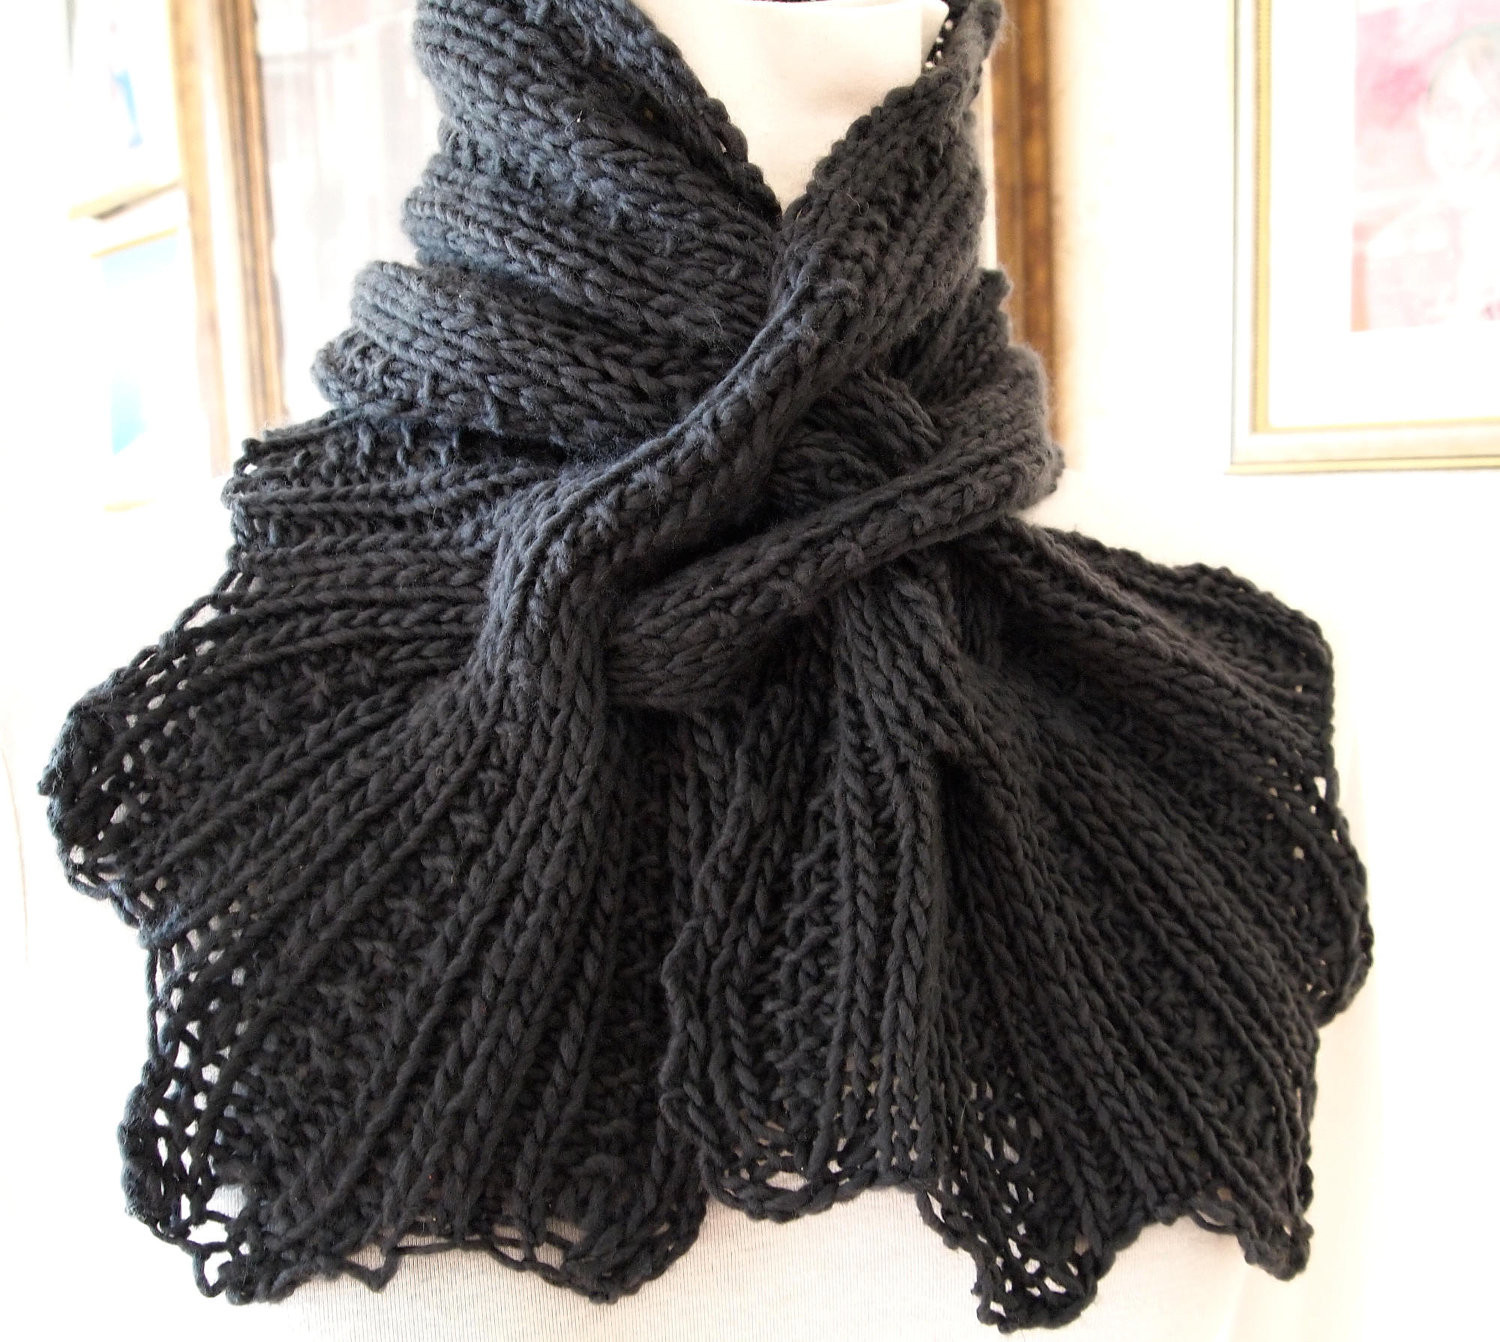 57 Free Knitting Patterns Scarves 10 Easy Scarf Knitting